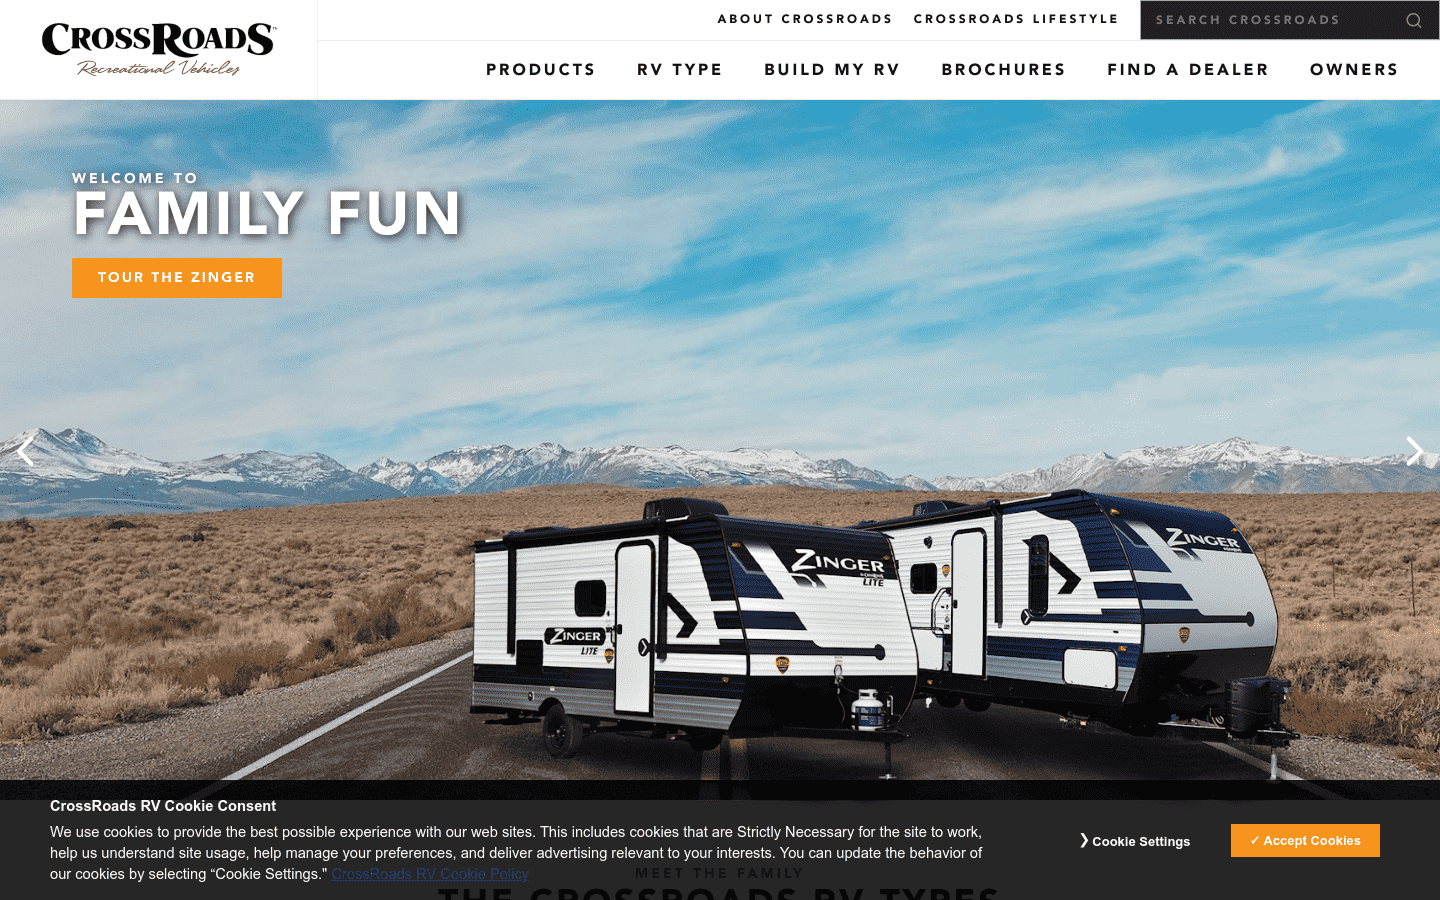 Crossroads RV reviews and complaints